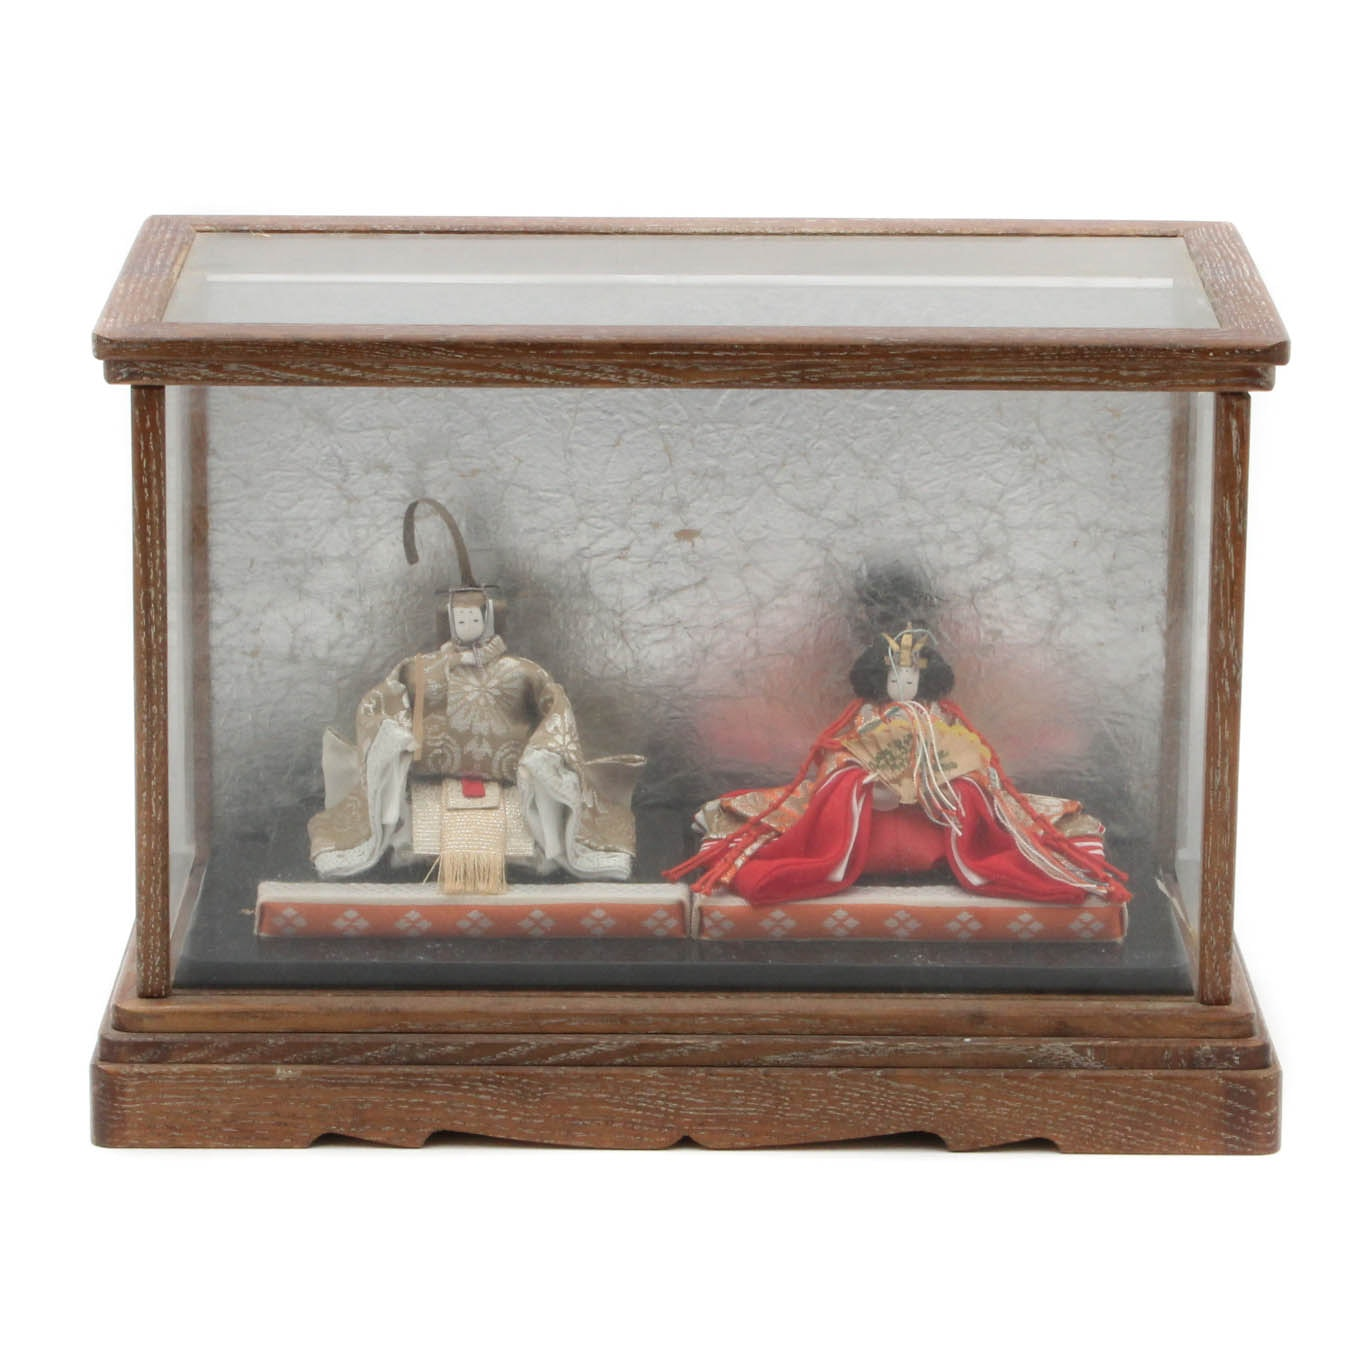 Miniature Japanese Emporer and Empress Dolls in Glass Case